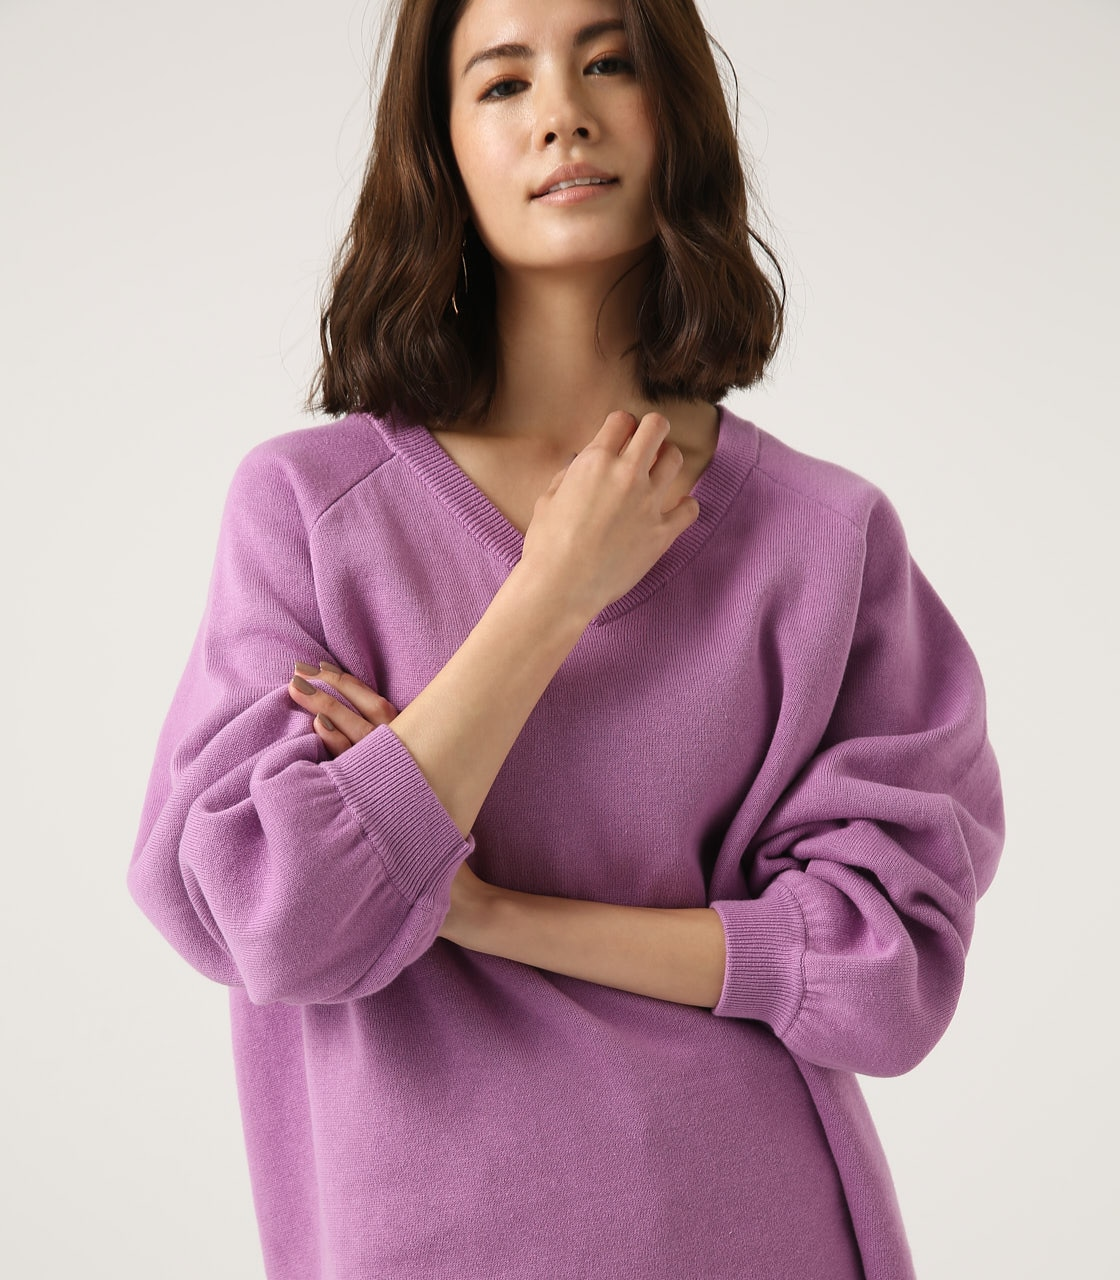 【AZUL BY MOUSSY】SWEATTER Vネック LOOSE TOPS 詳細画像 L/PUR 2